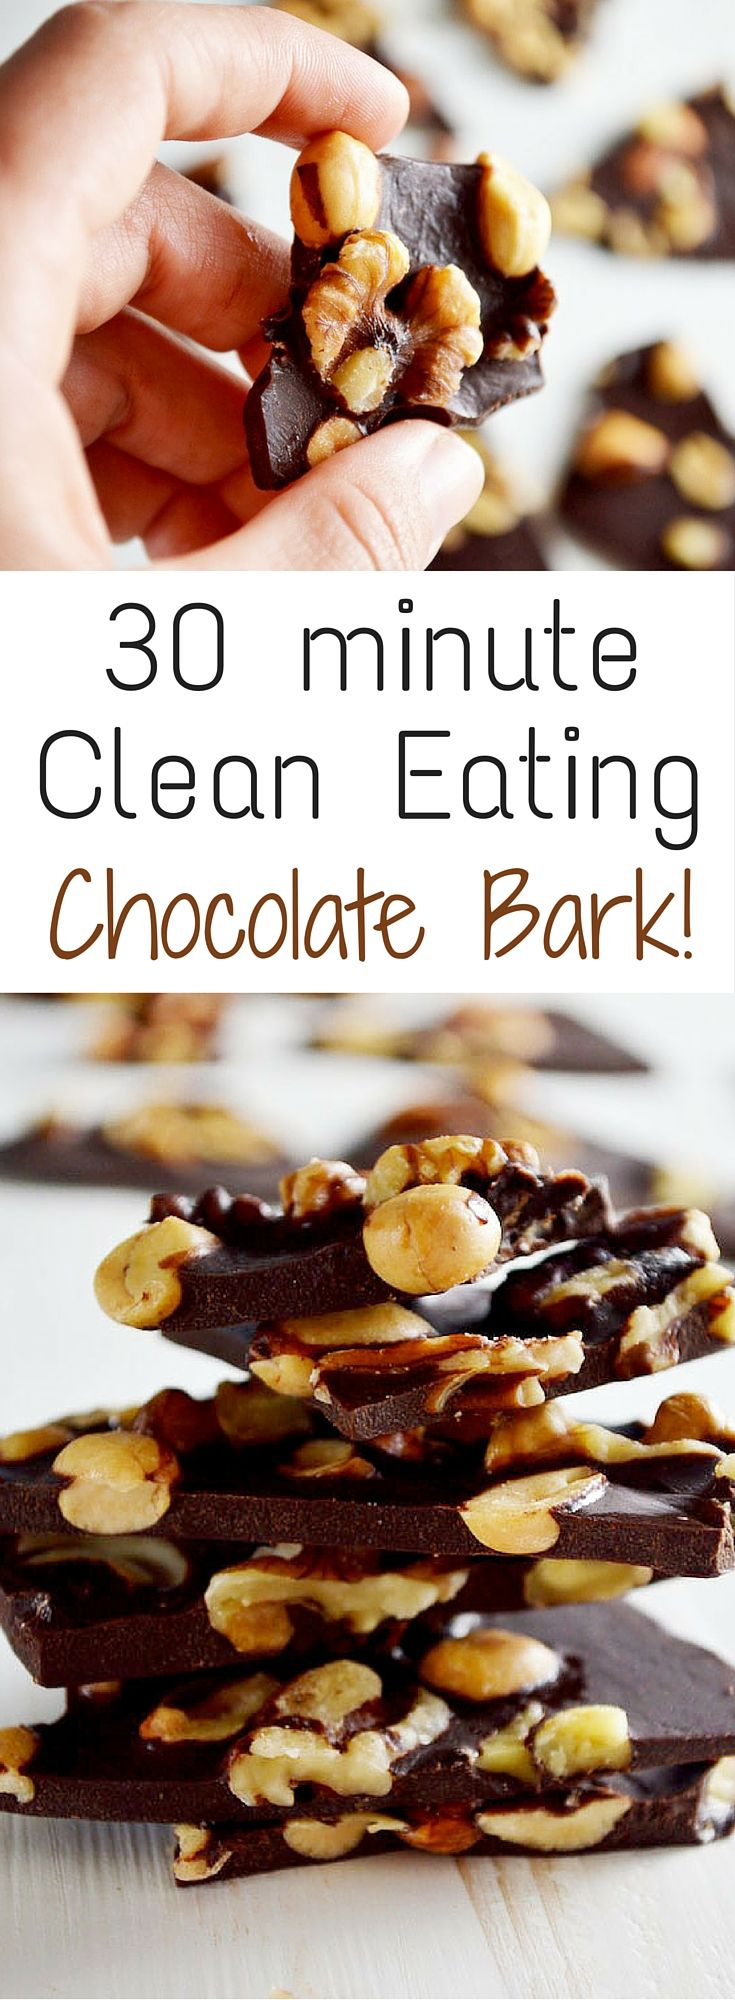 Perfect for all those New Year's resolutions! This clean eating chocolate bark is definitely taking care of my sweet tooth.